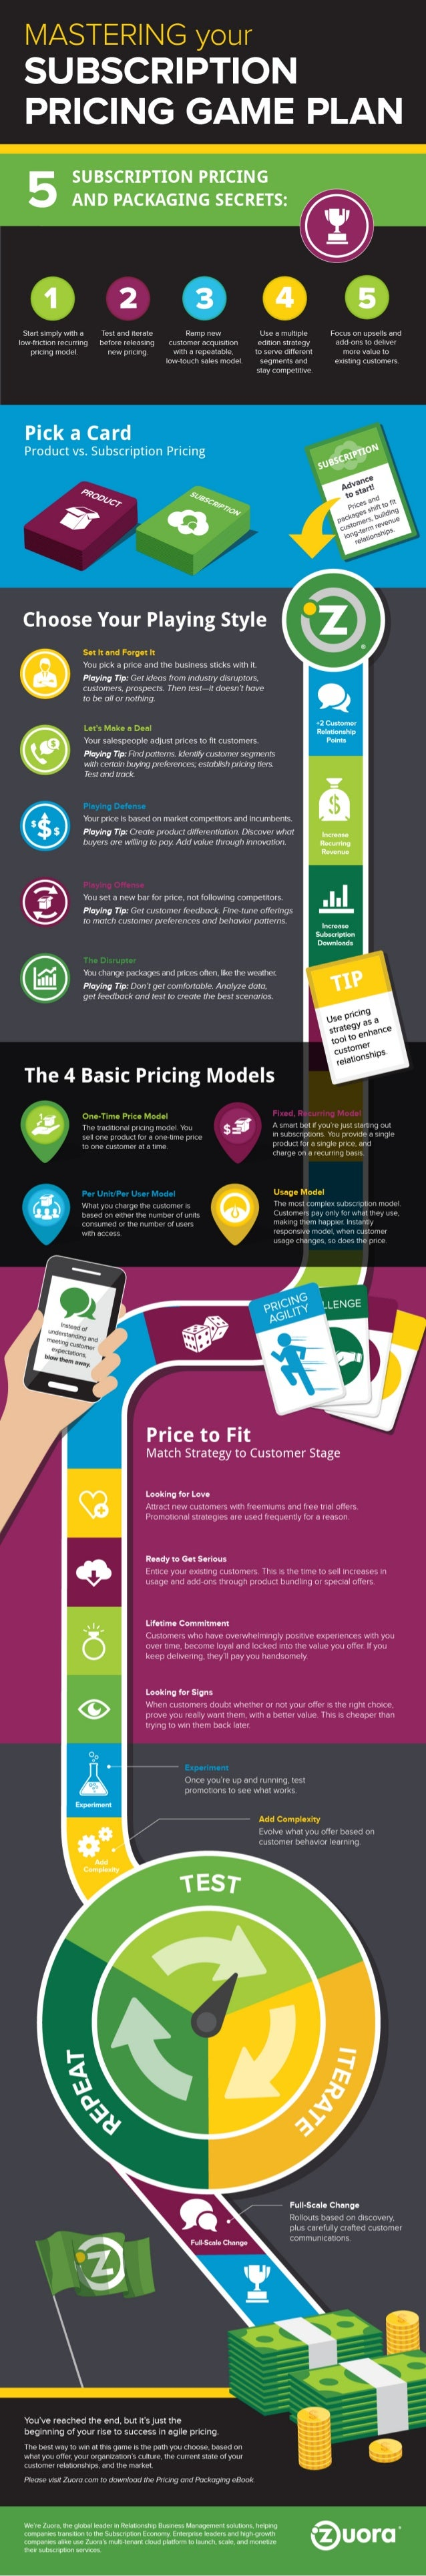 5 Secrets of Subscription Pricing Infographic